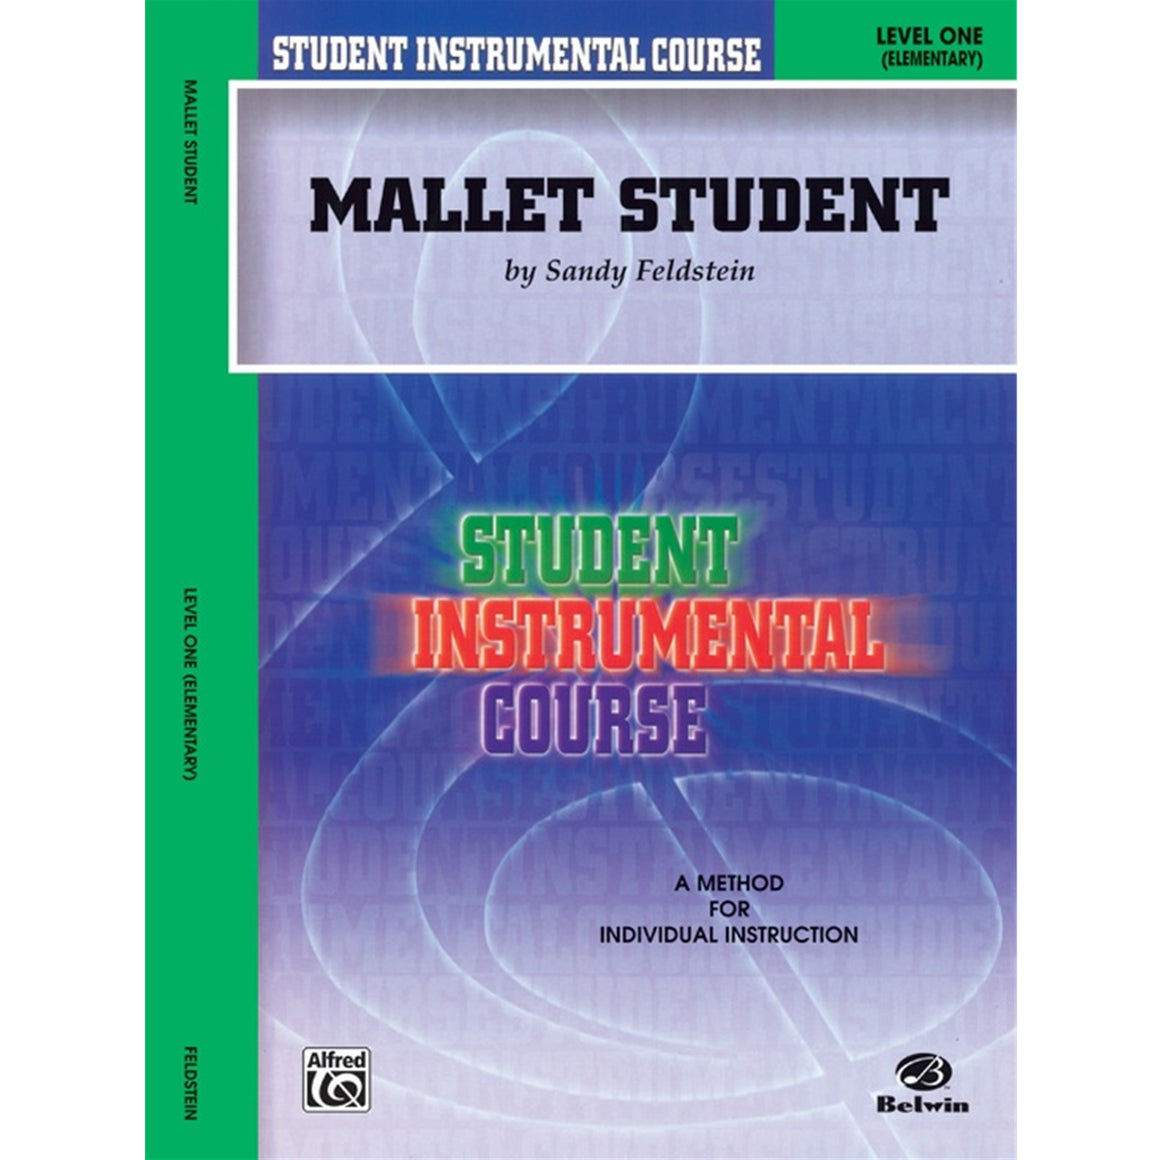 ALFRED 00BIC00181A Student Instrumental Course: Mallet Student, Level I [Mallet Instrument]